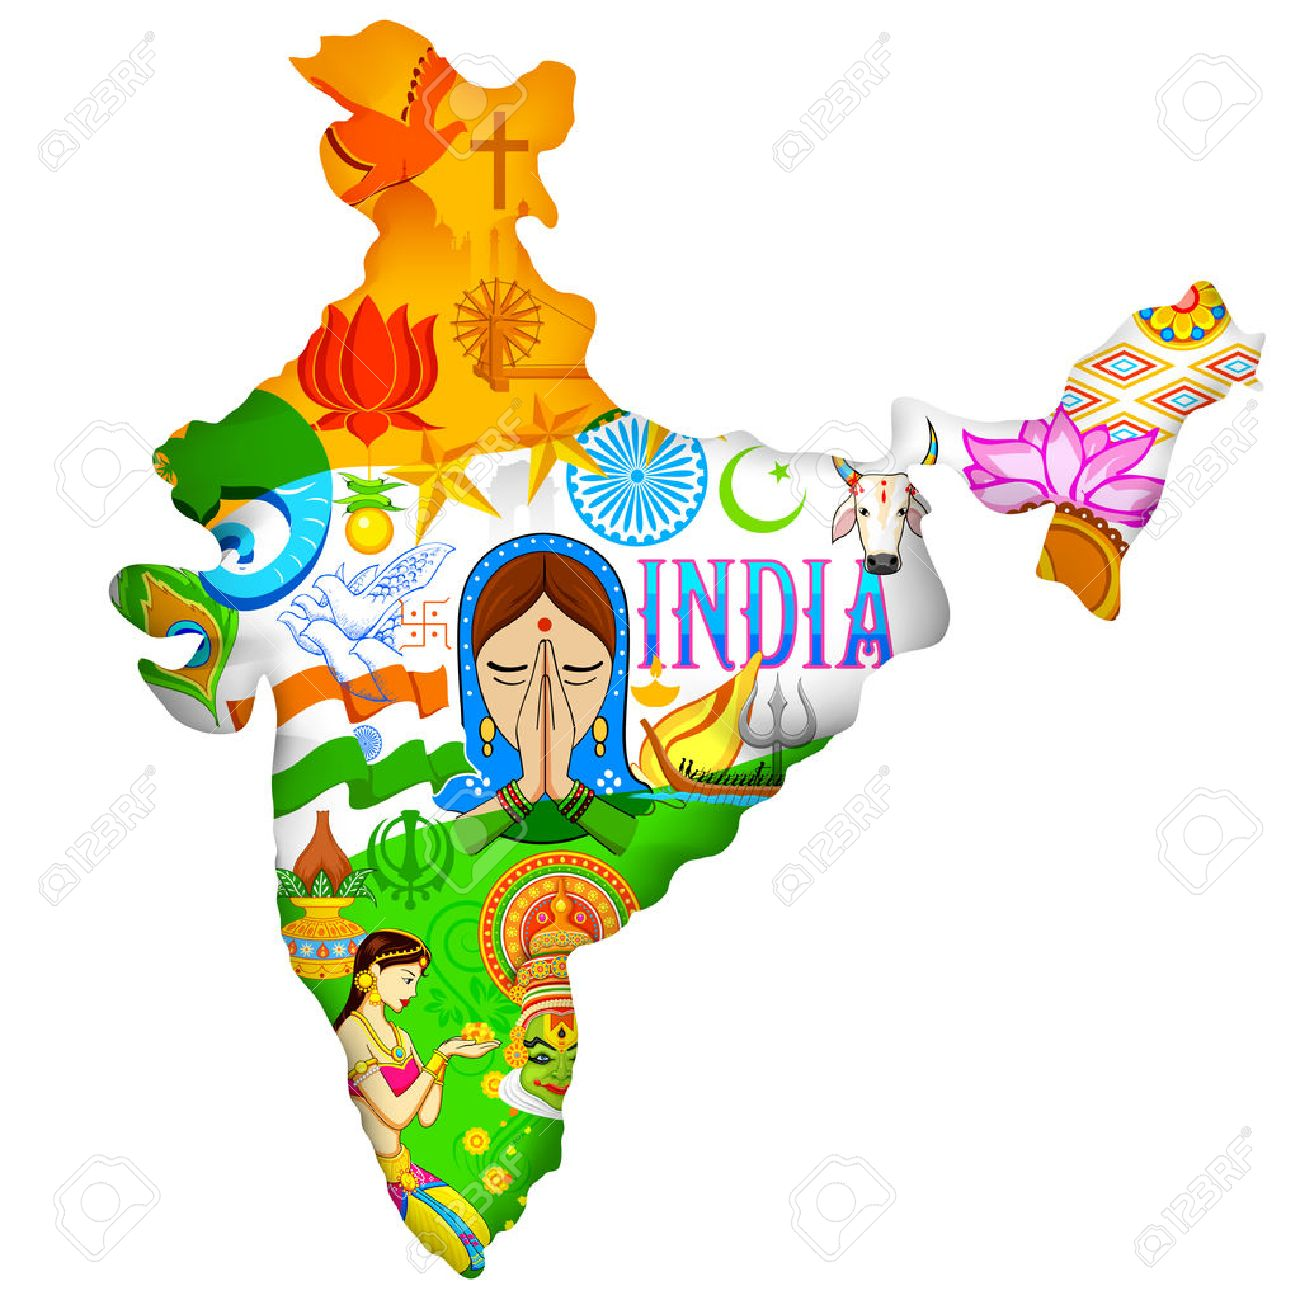 india map stock photos u0026 pictures royalty free india map images